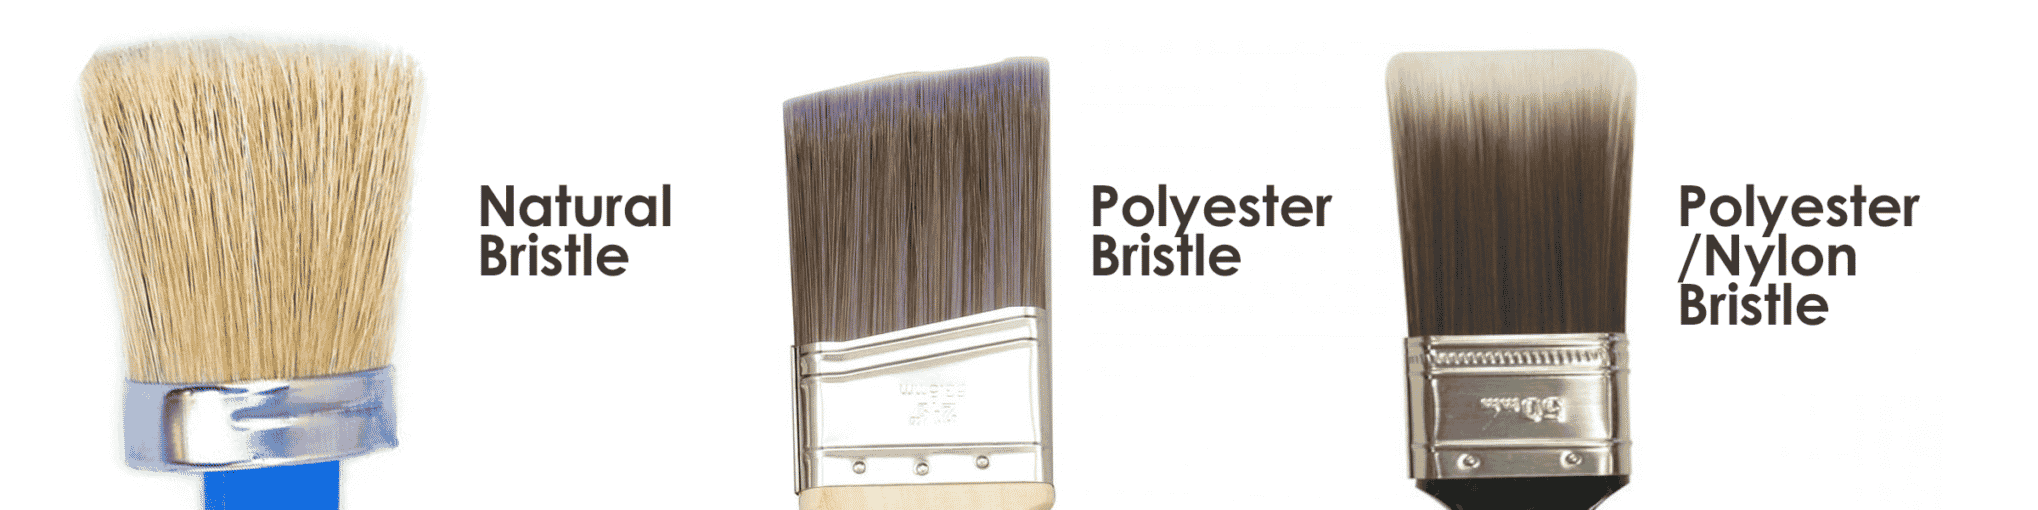 Different Brush Types: Natural Bristle, Polyester Bristle, Polyester/Nylon Bristle